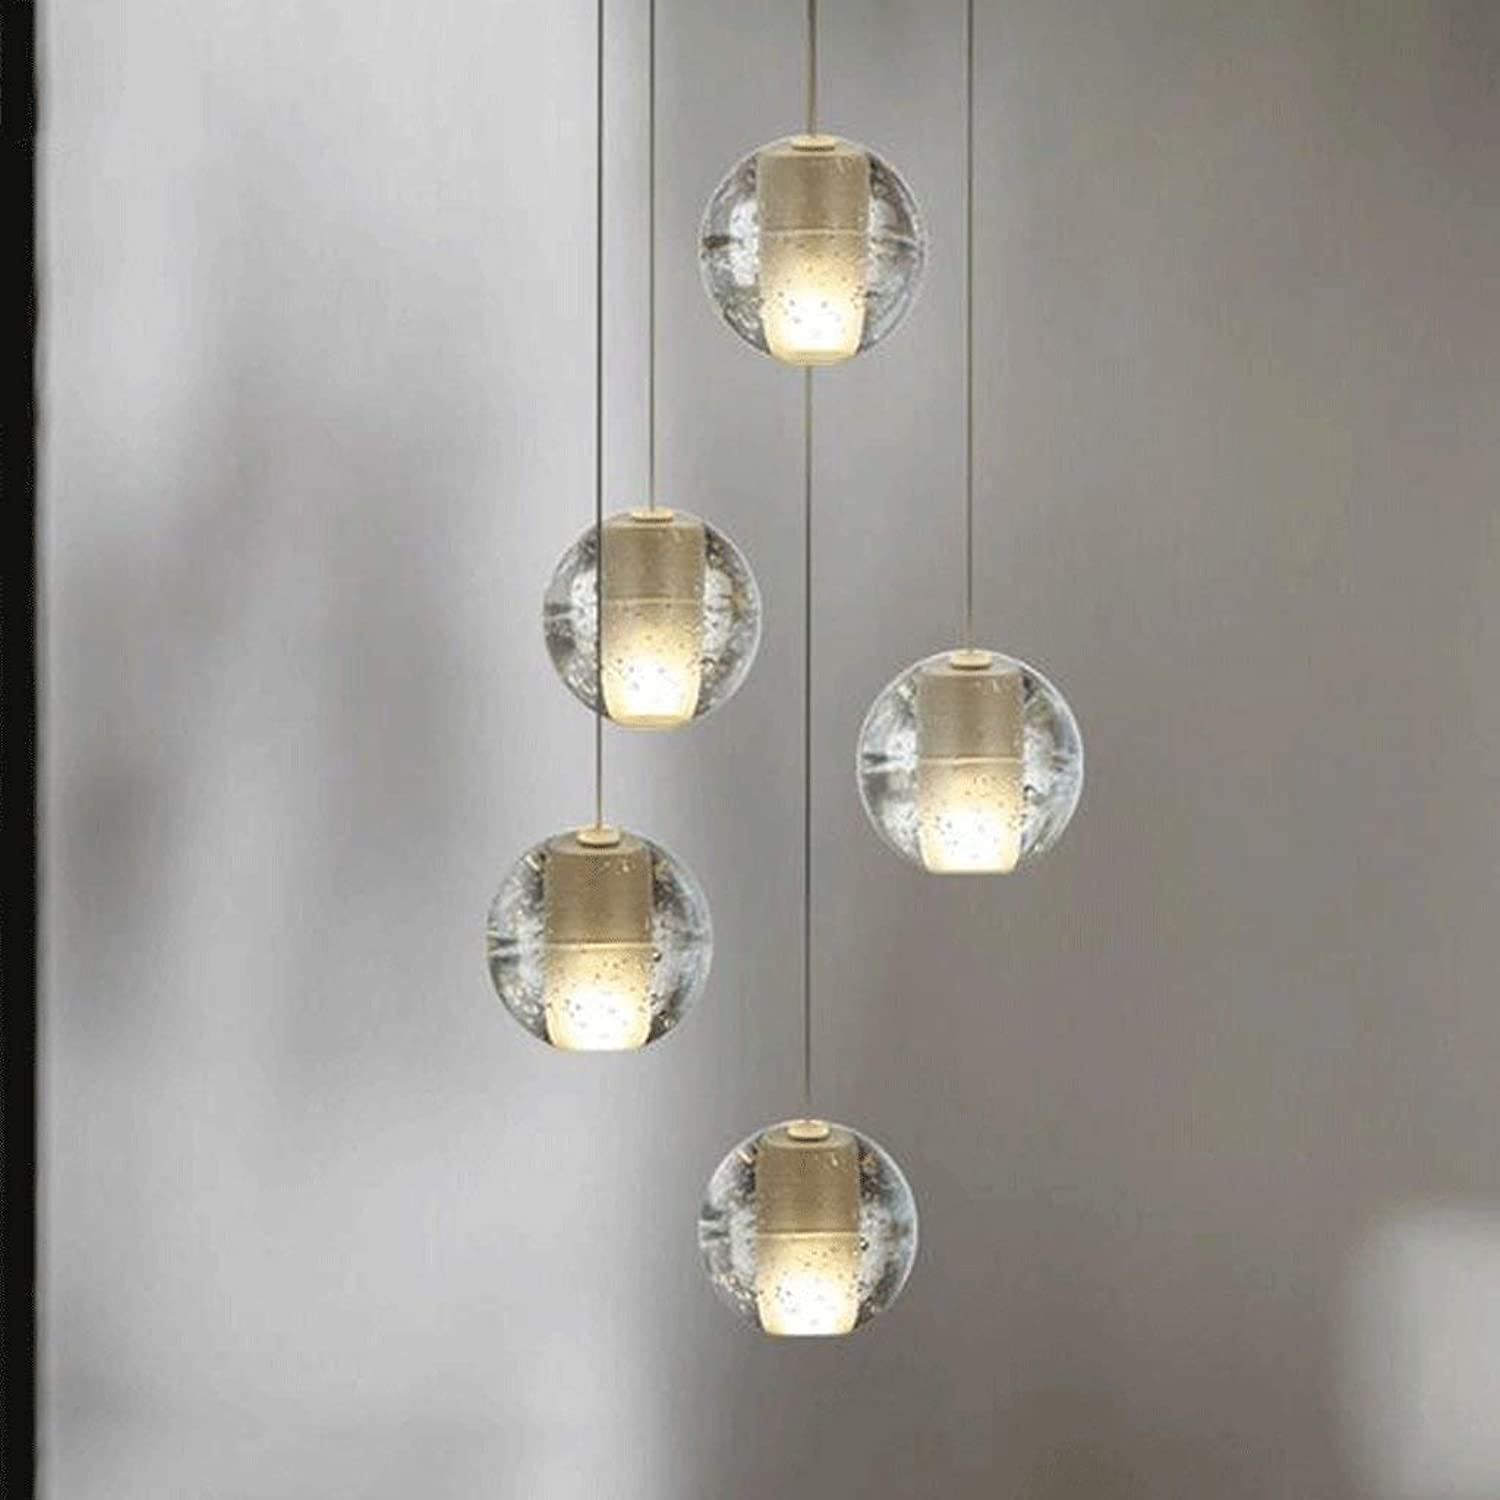 Simplemodern lounge Bar kreative Restaurant der LED-Beleuchtung Magic crystal ball Kronleuchter Meteorschauer Reihe von hochwertigen Geschenk kristall Lichtquelle (Farbe  1 PCS)